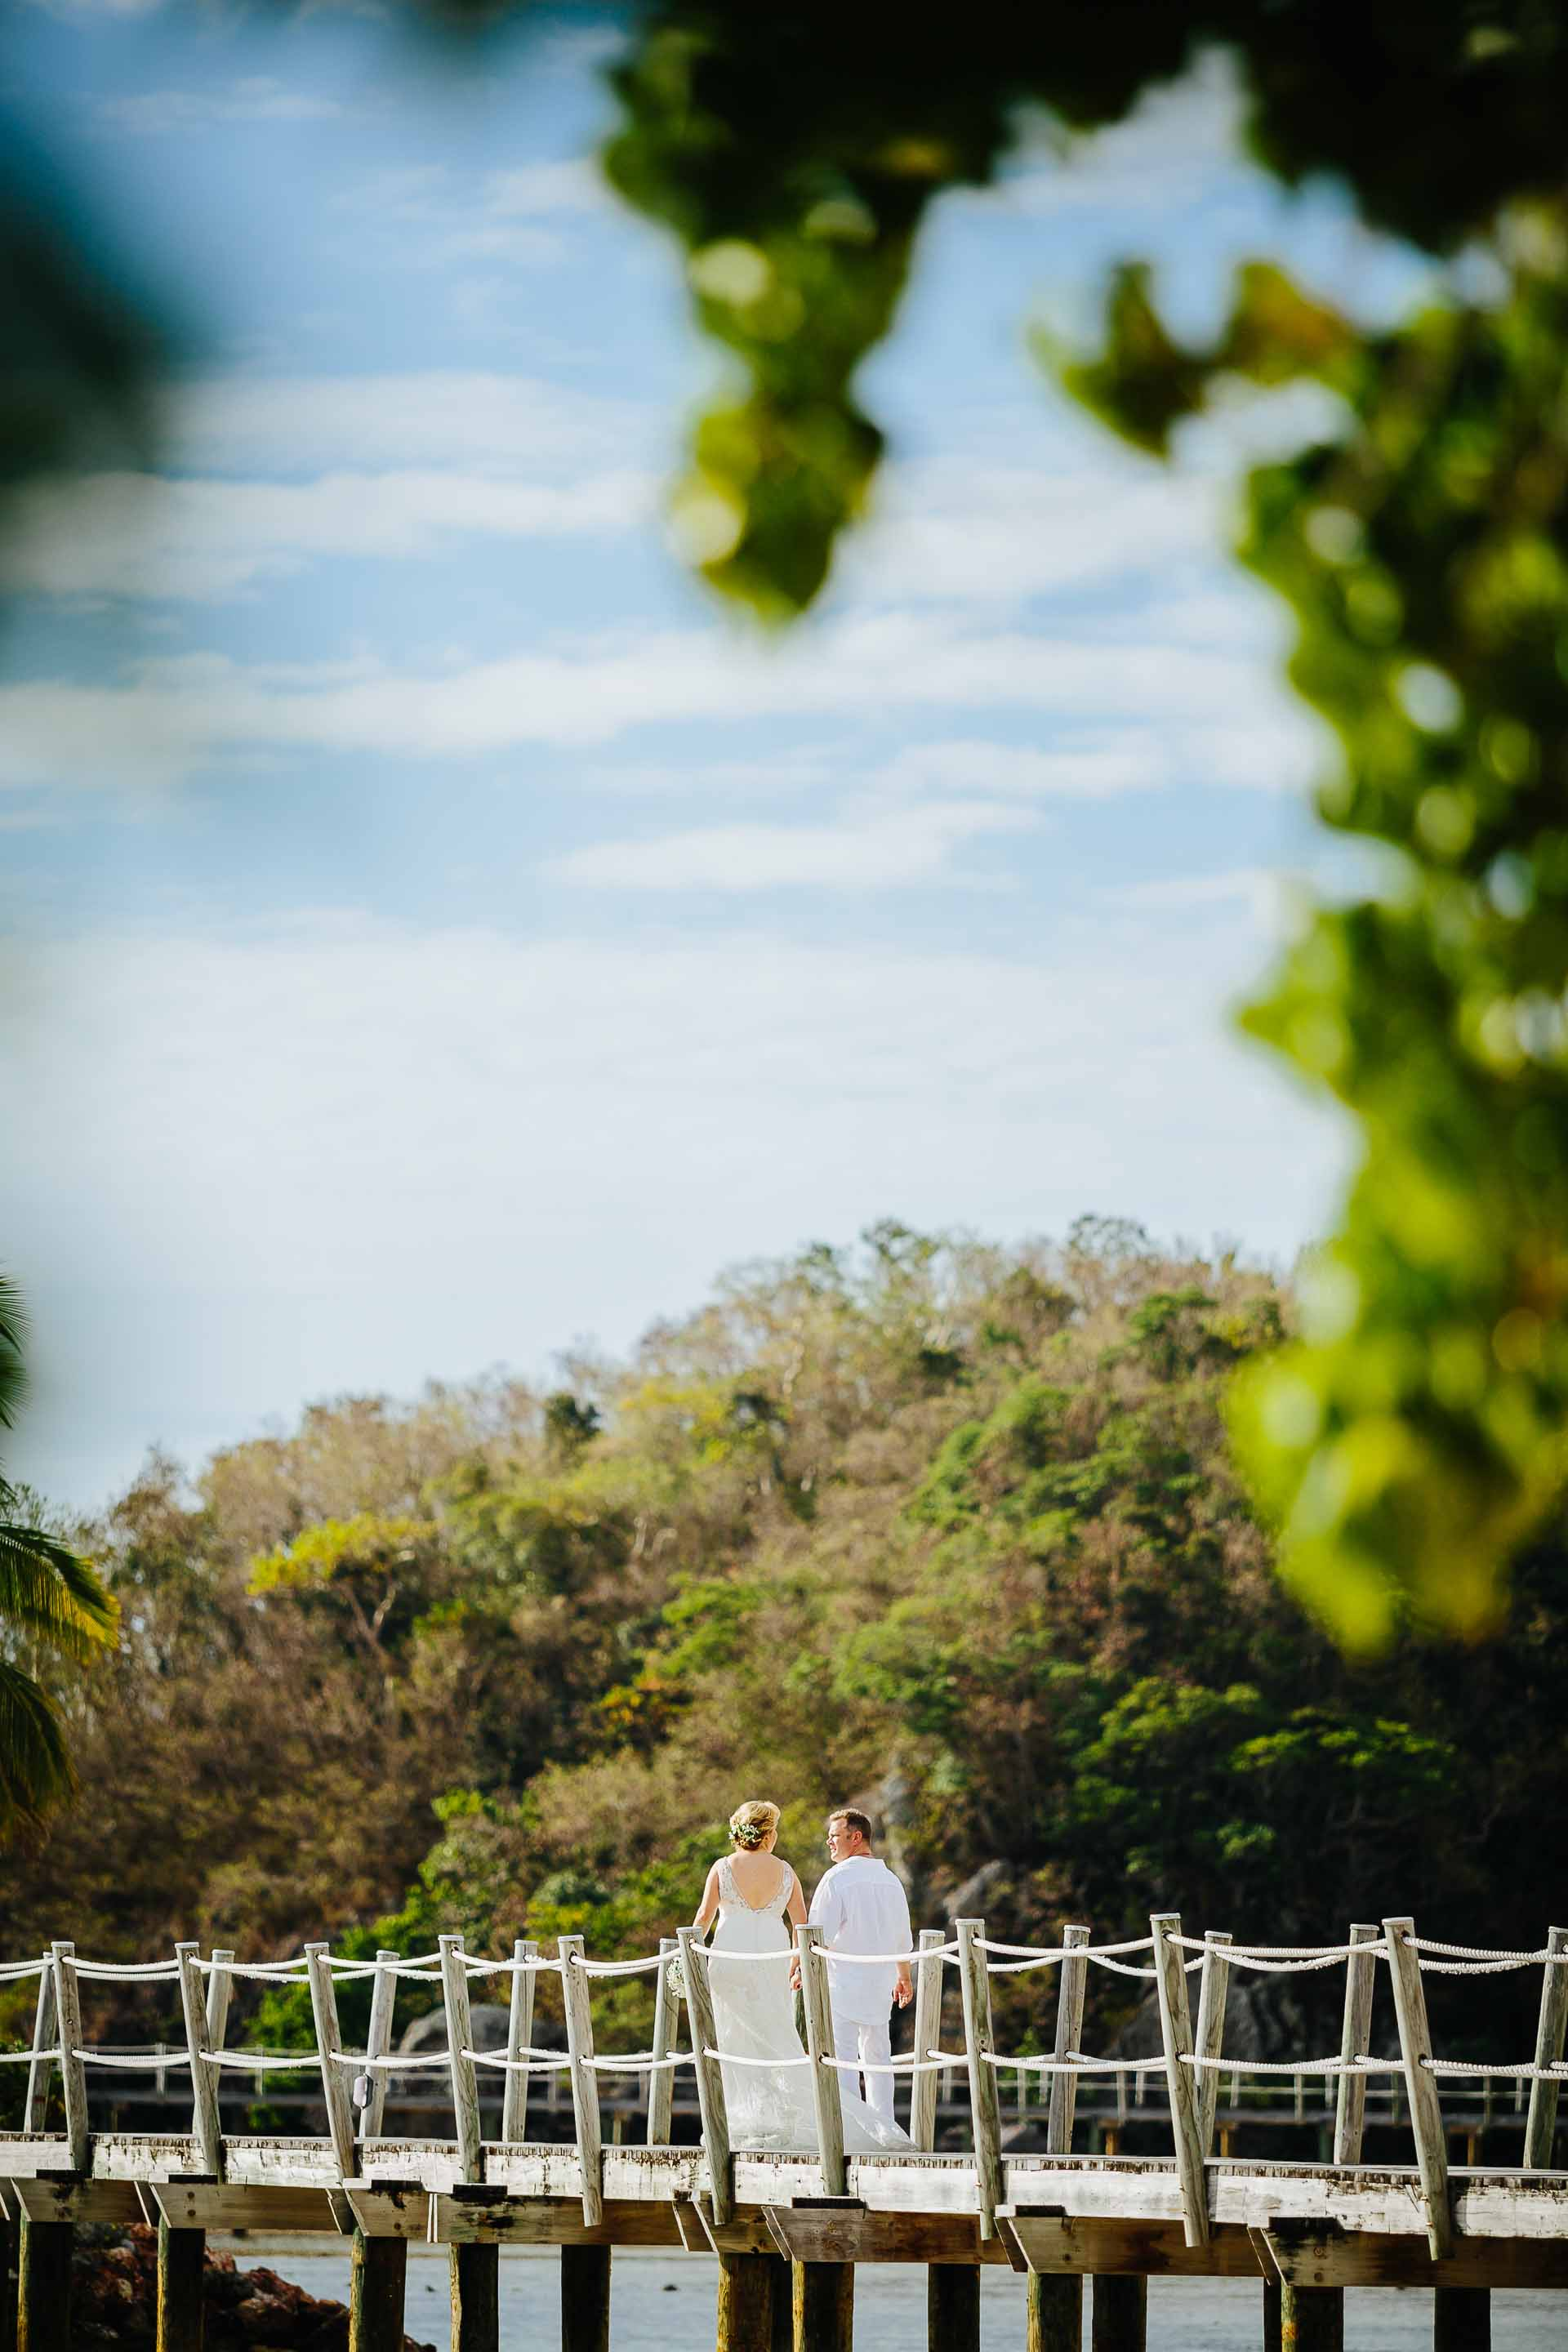 the couple walking down the pier through the trees